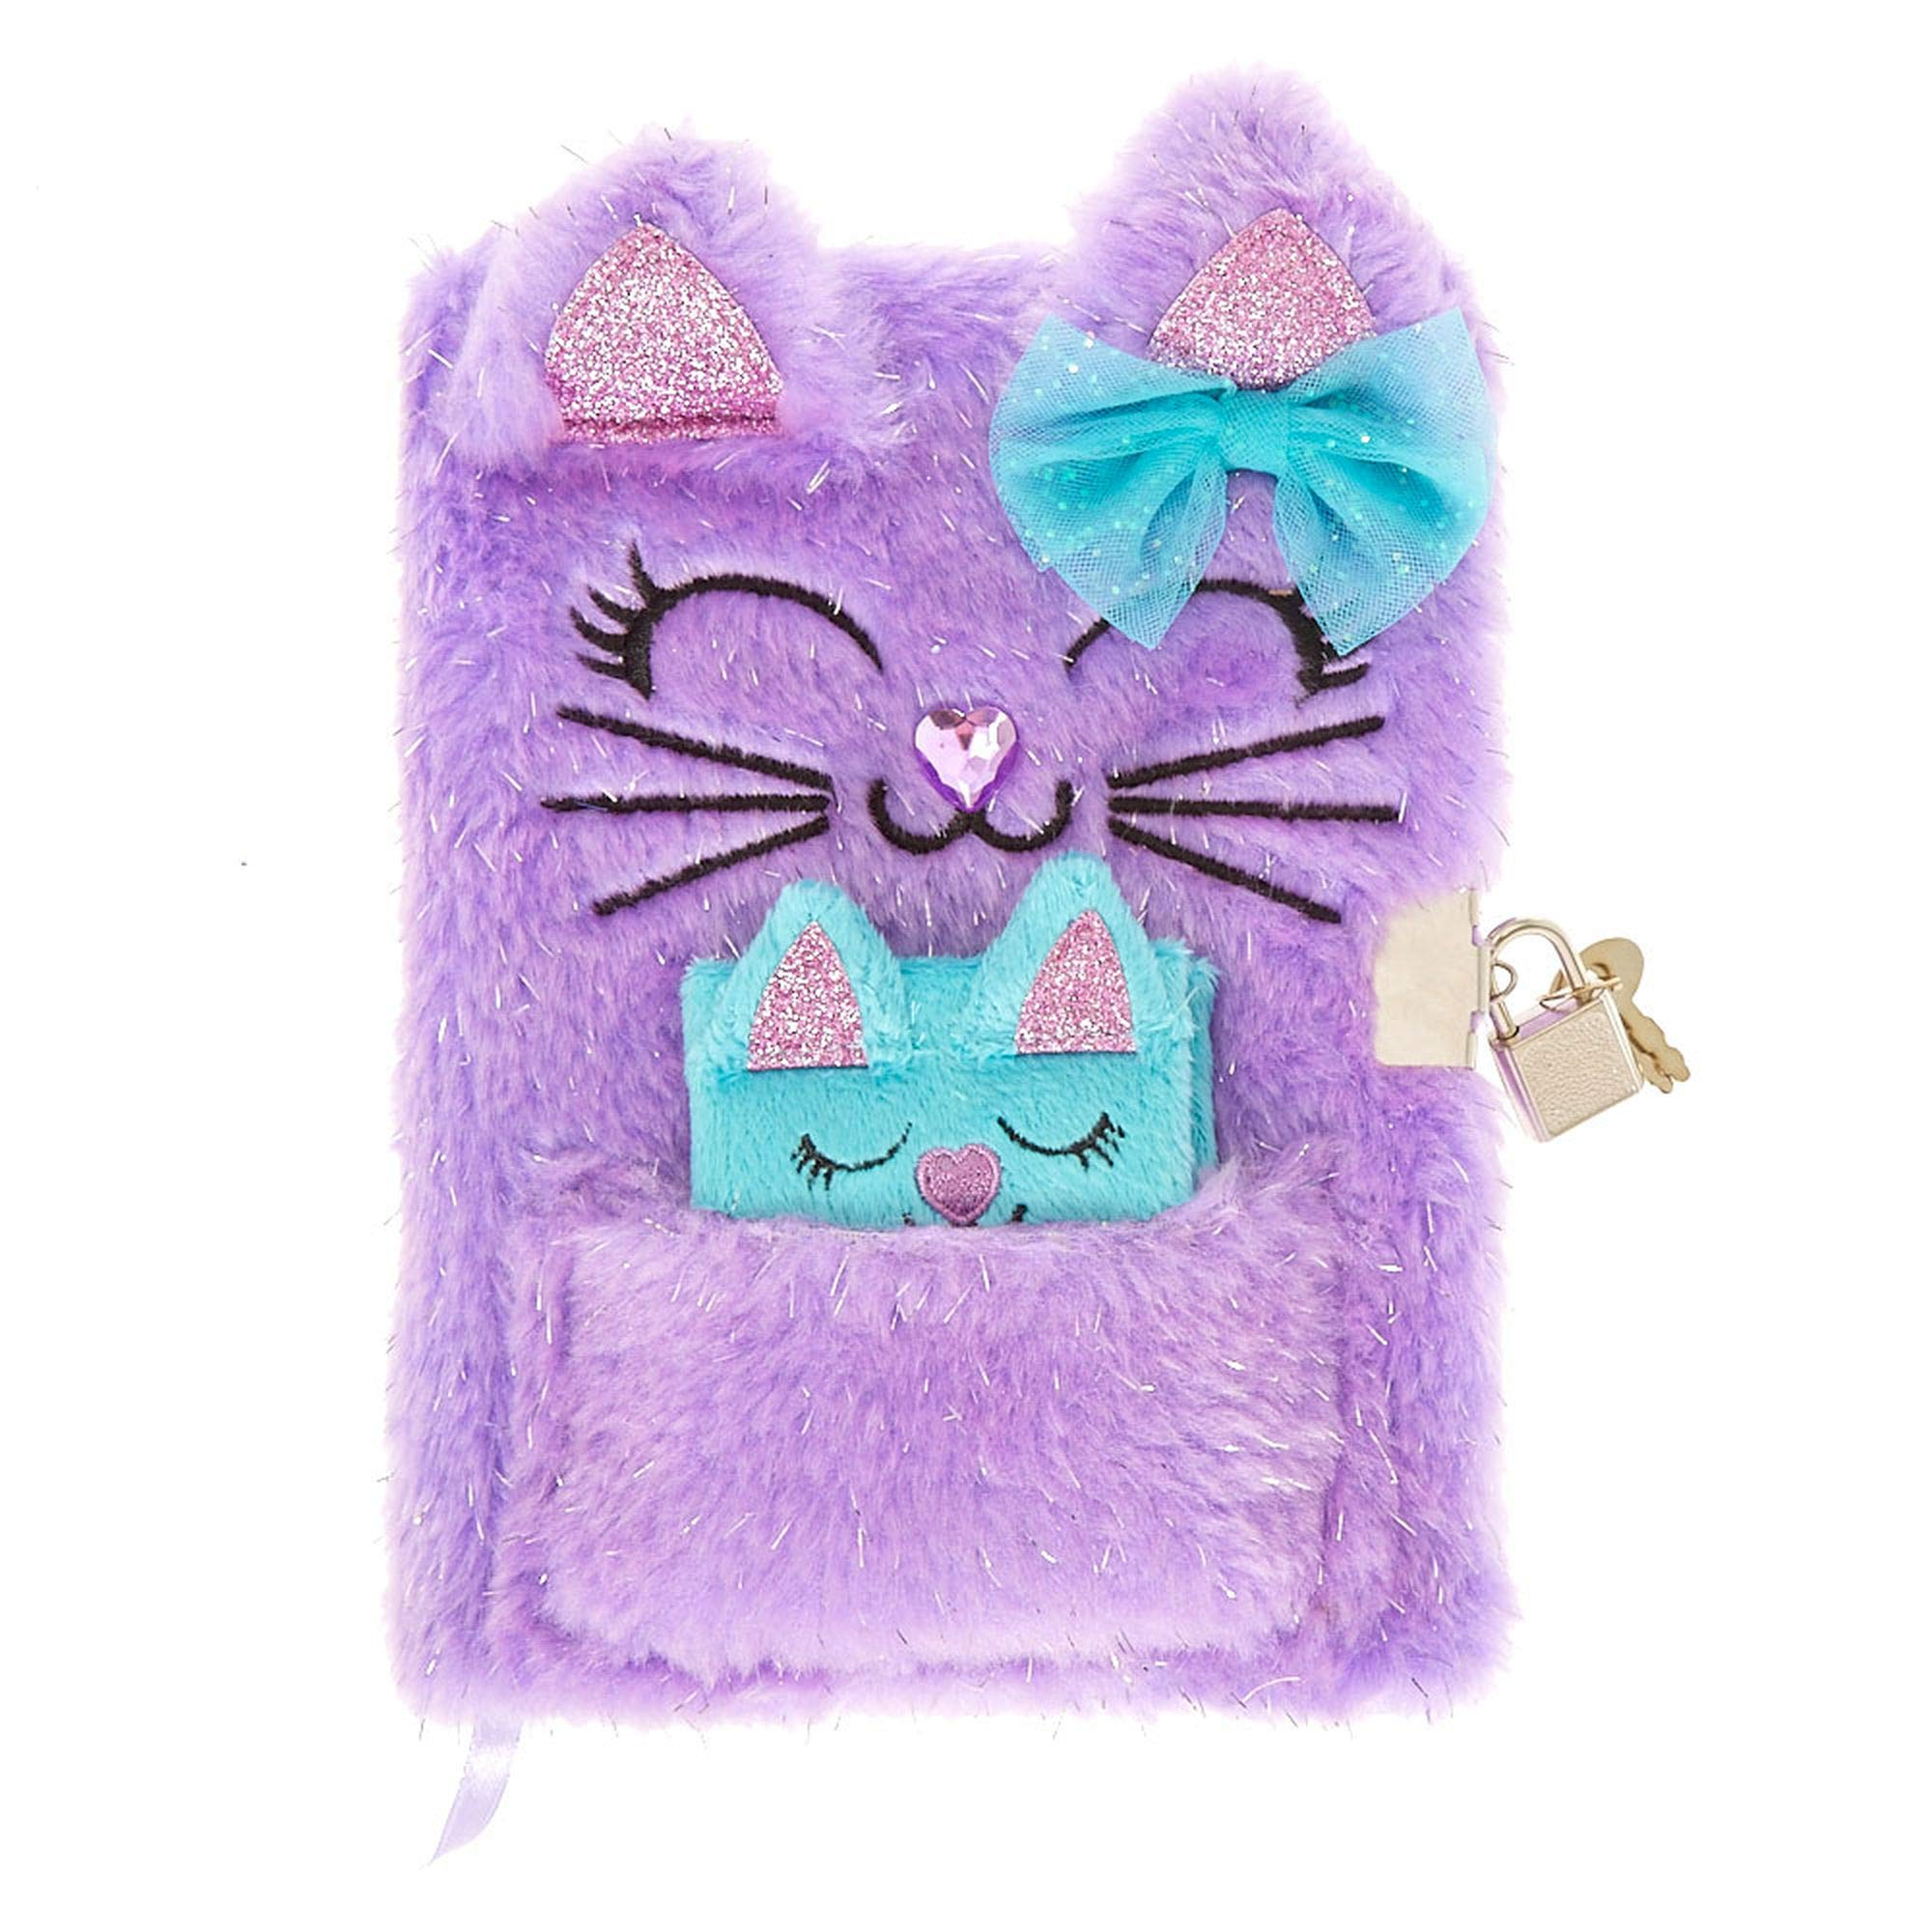 Claires Glittery Plush Purple Kitty Diary with Lock & Keys & Matching Mini Notebook by Claires